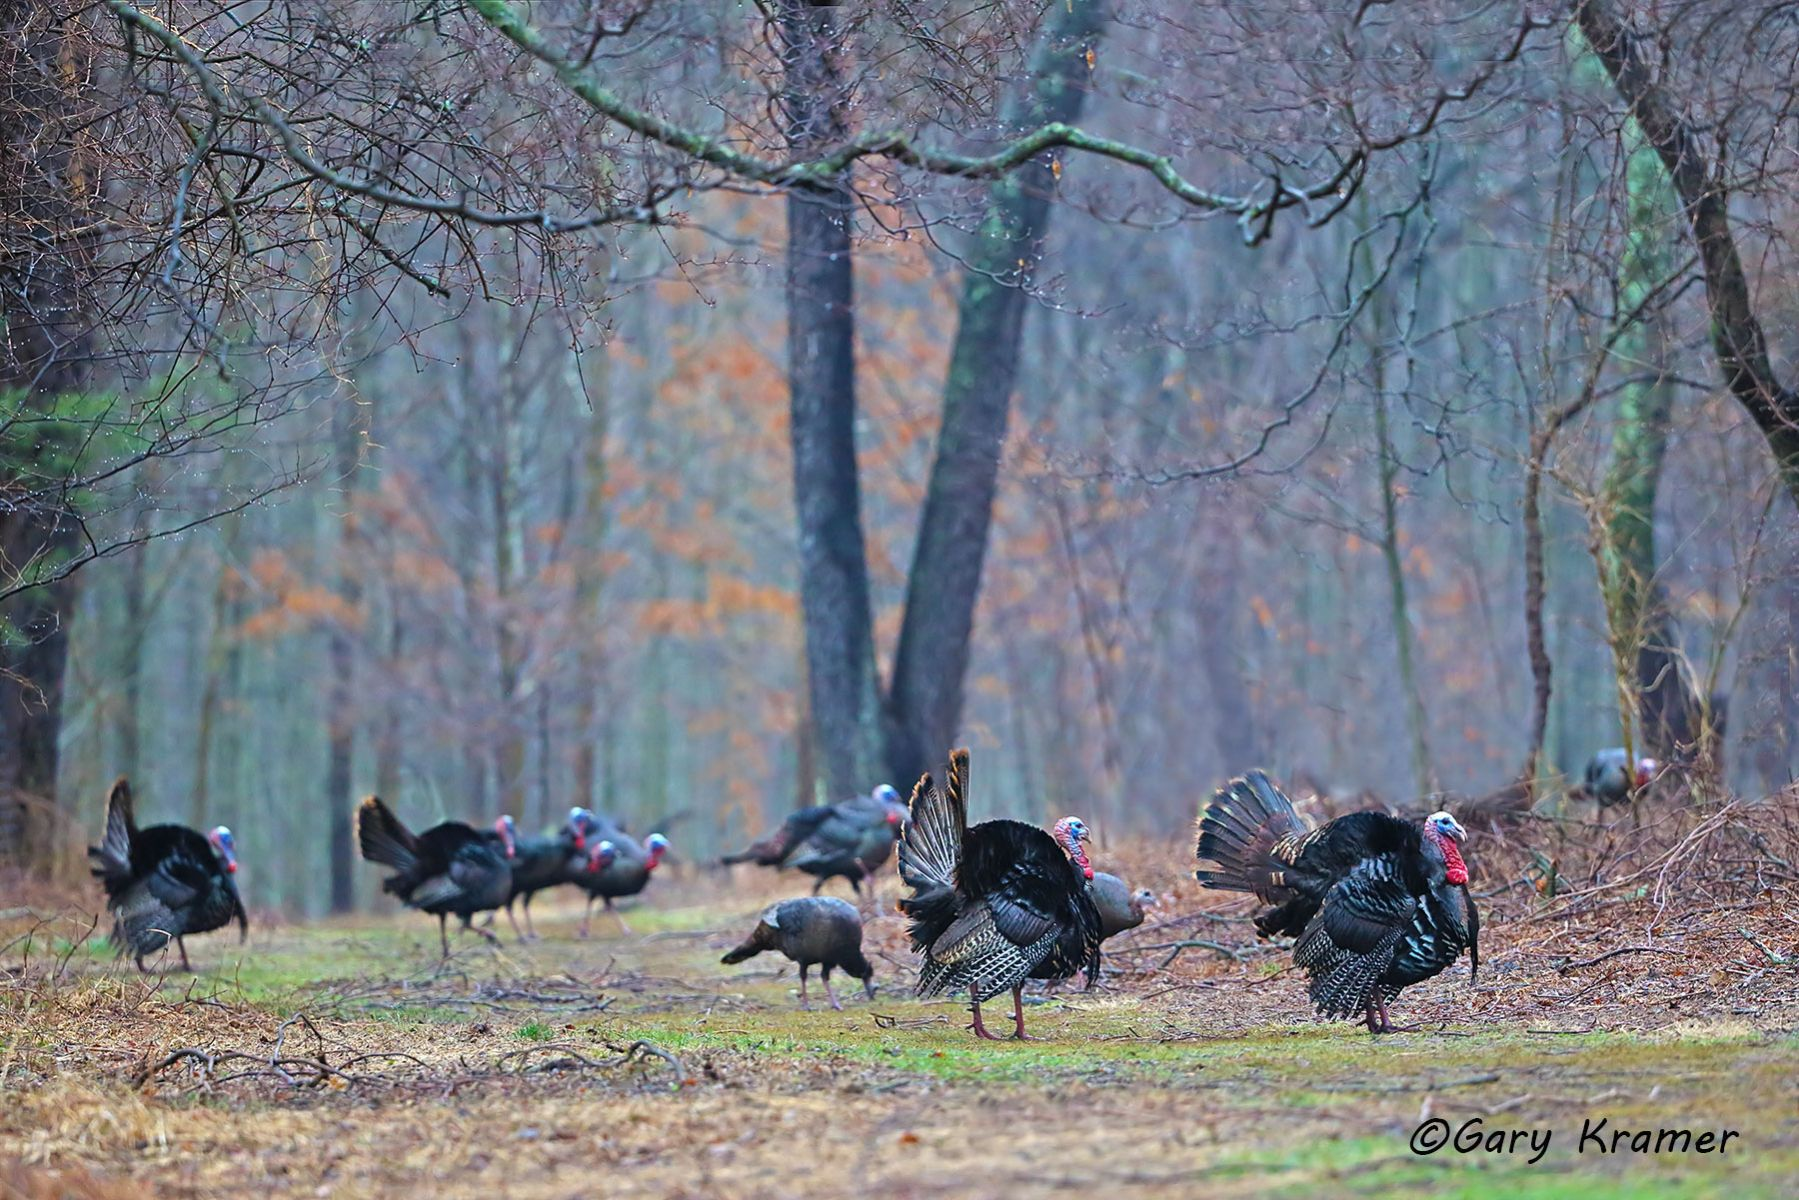 Wild Turkey (Eastern) (Meleagris gallopavo silvestris) - NBGTe#352d